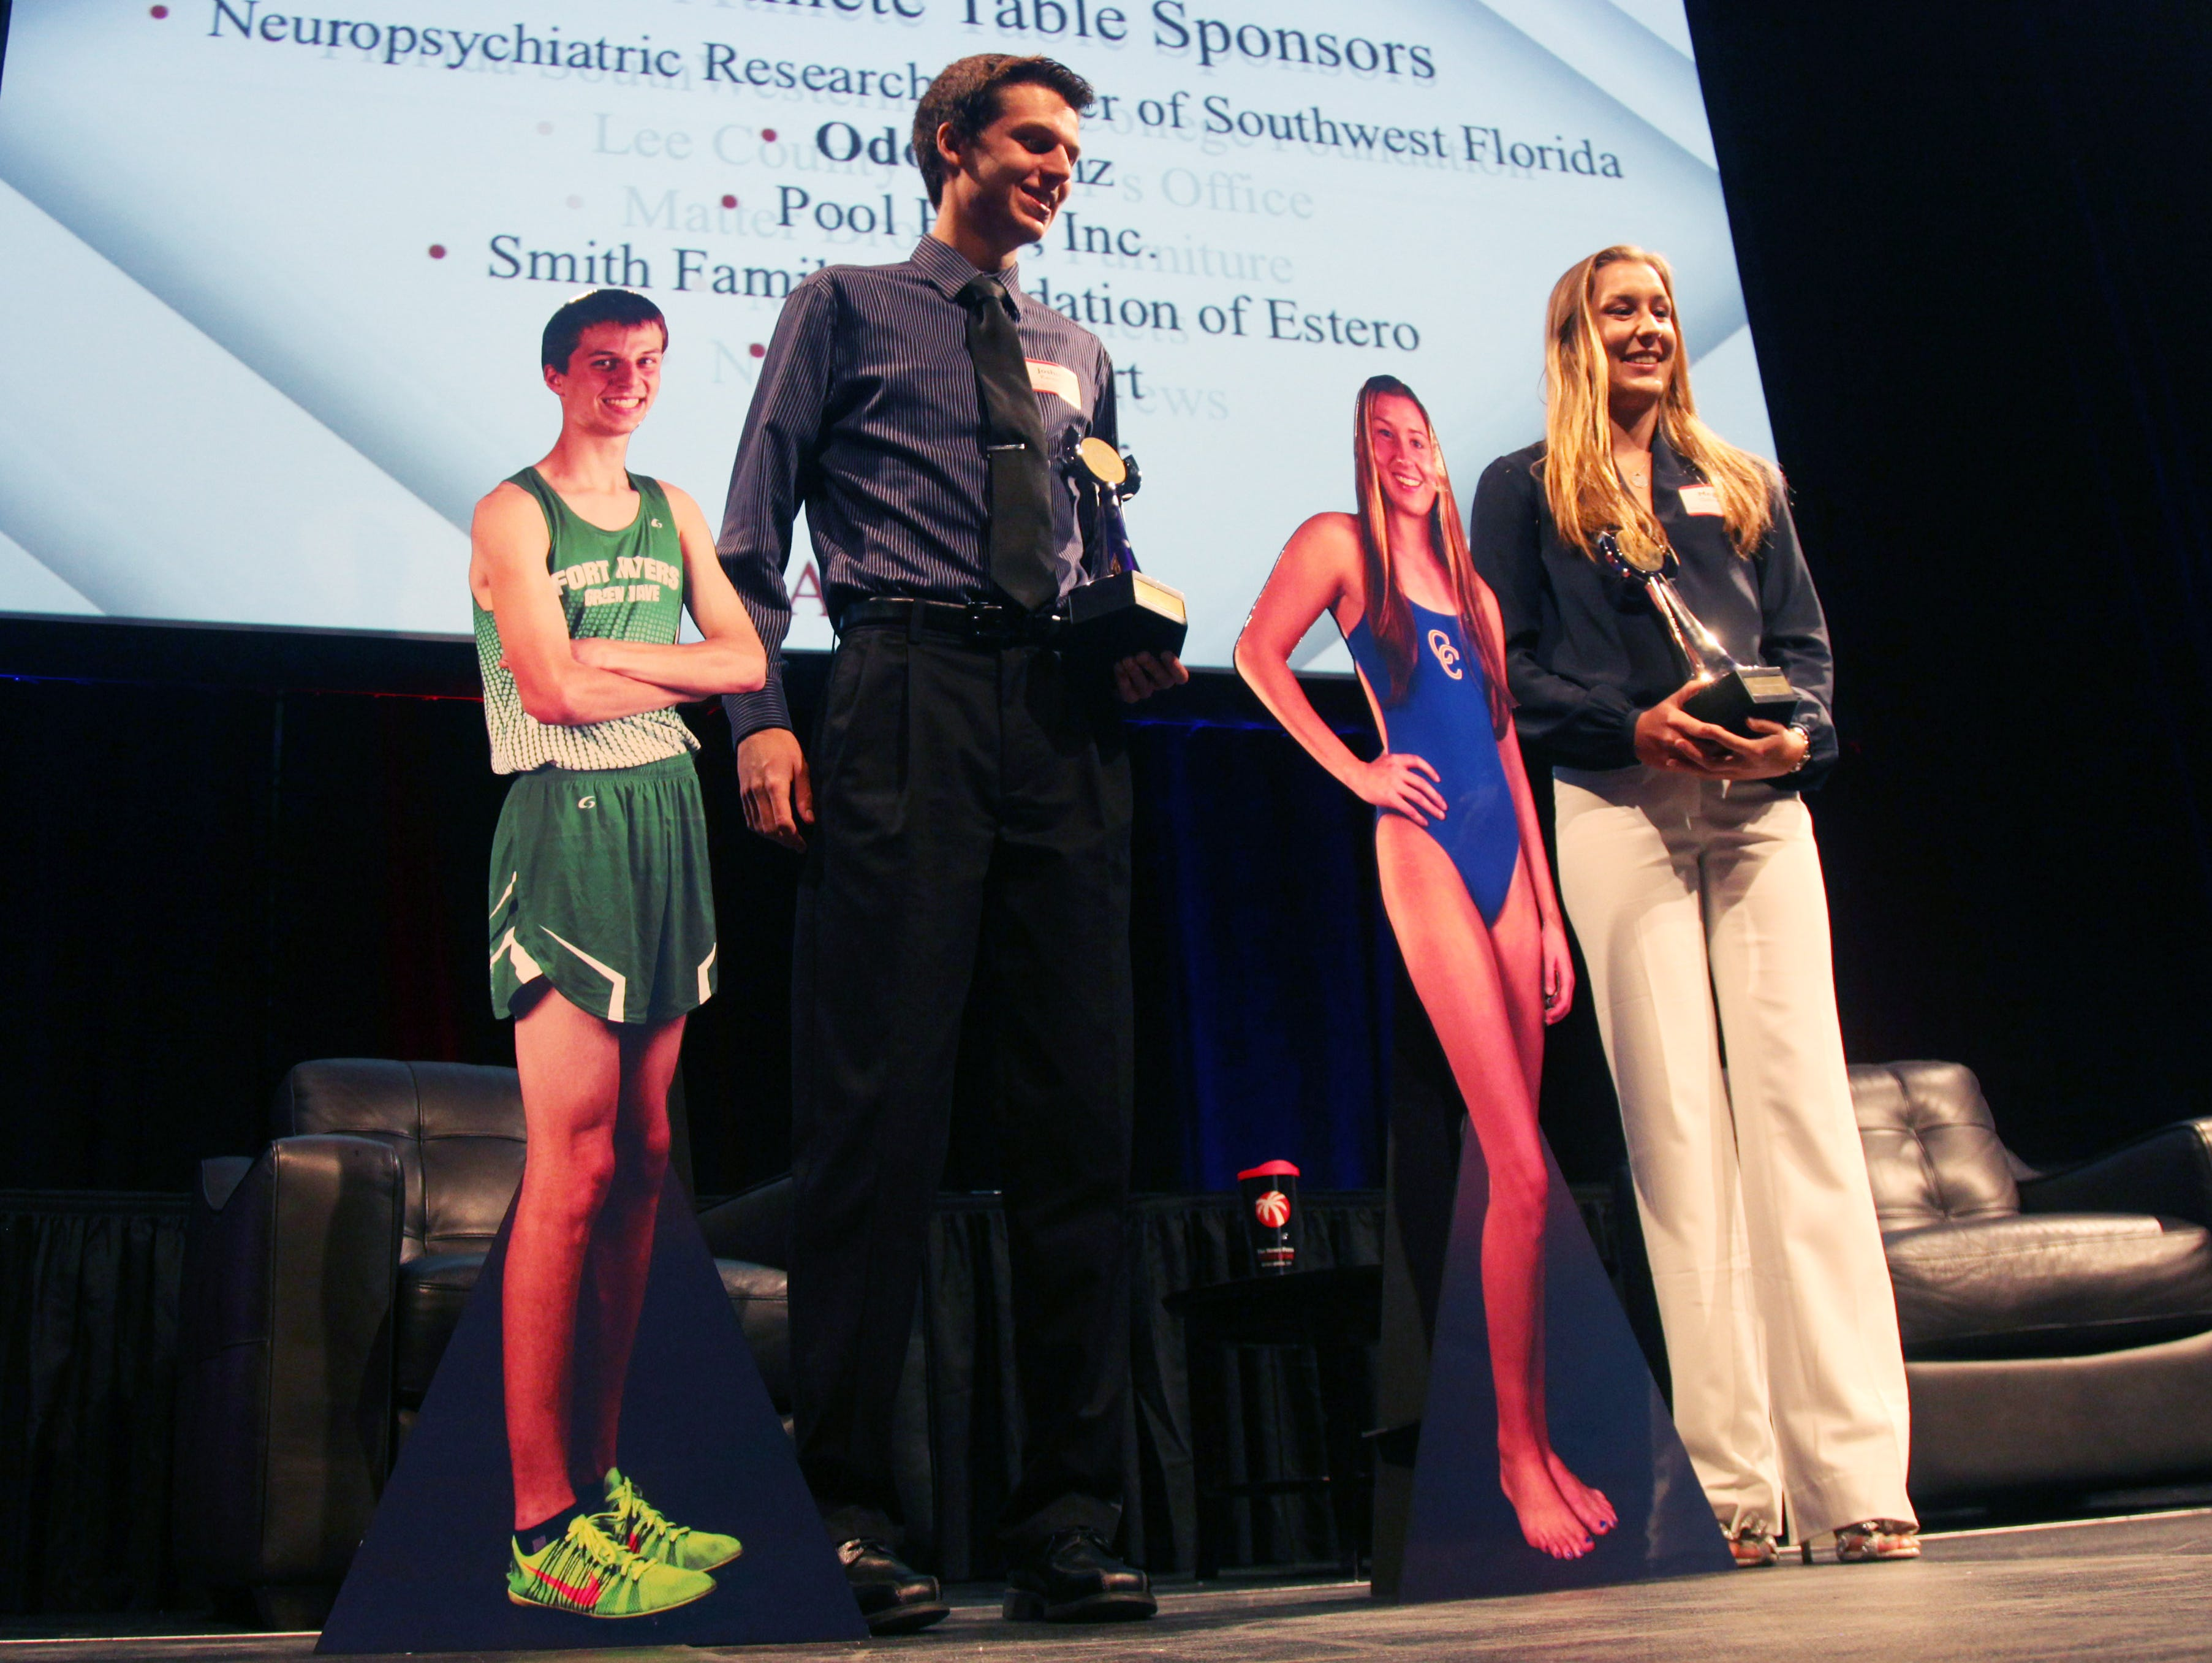 Josh Kennedy, of Fort Myers High School, and Megan Galbreath, of Cape Coral High School, are named male and female Athlete of the Year during the News-Press All-Area Stars Awards Banquet at Germain Arena on Tuesday night.